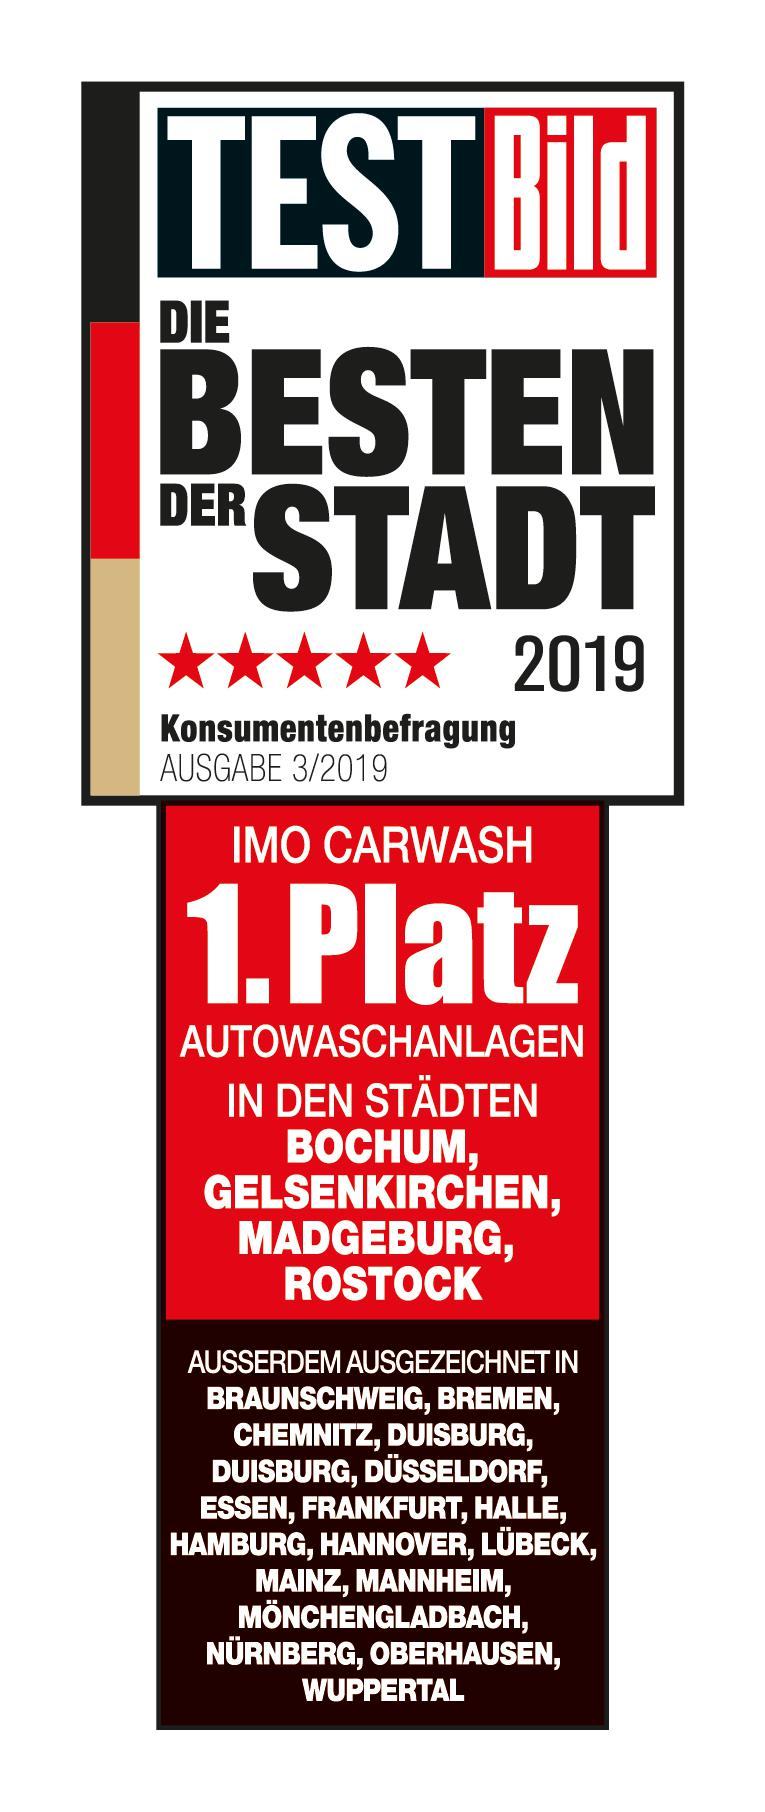 IMO Car Wash - CLOSED, Liebknechtstr. 82 in Magdeburg